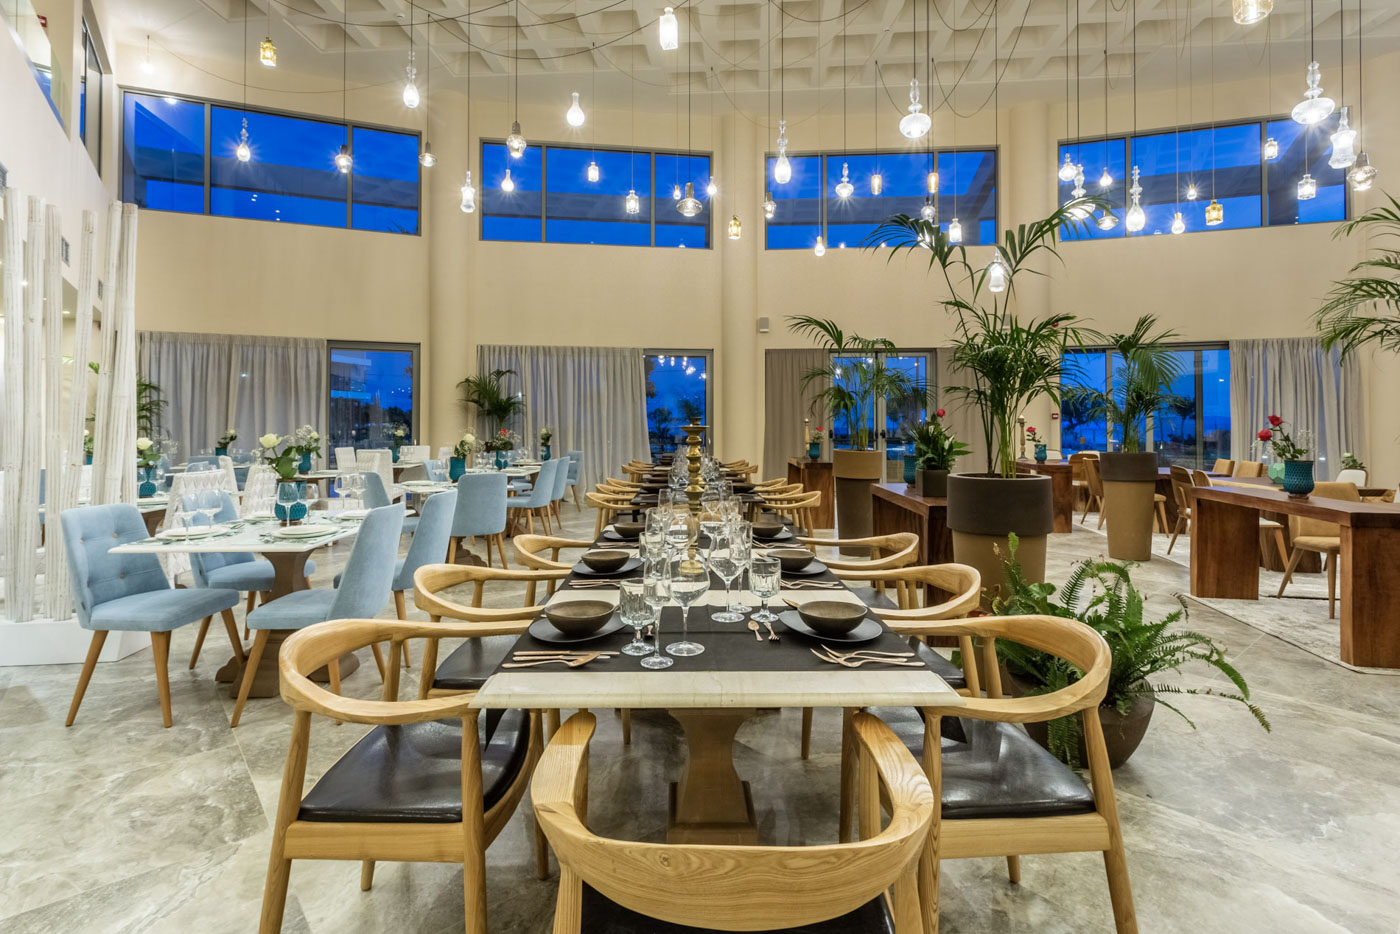 Elysian luxury hotel and spa Kalamata restaurant table